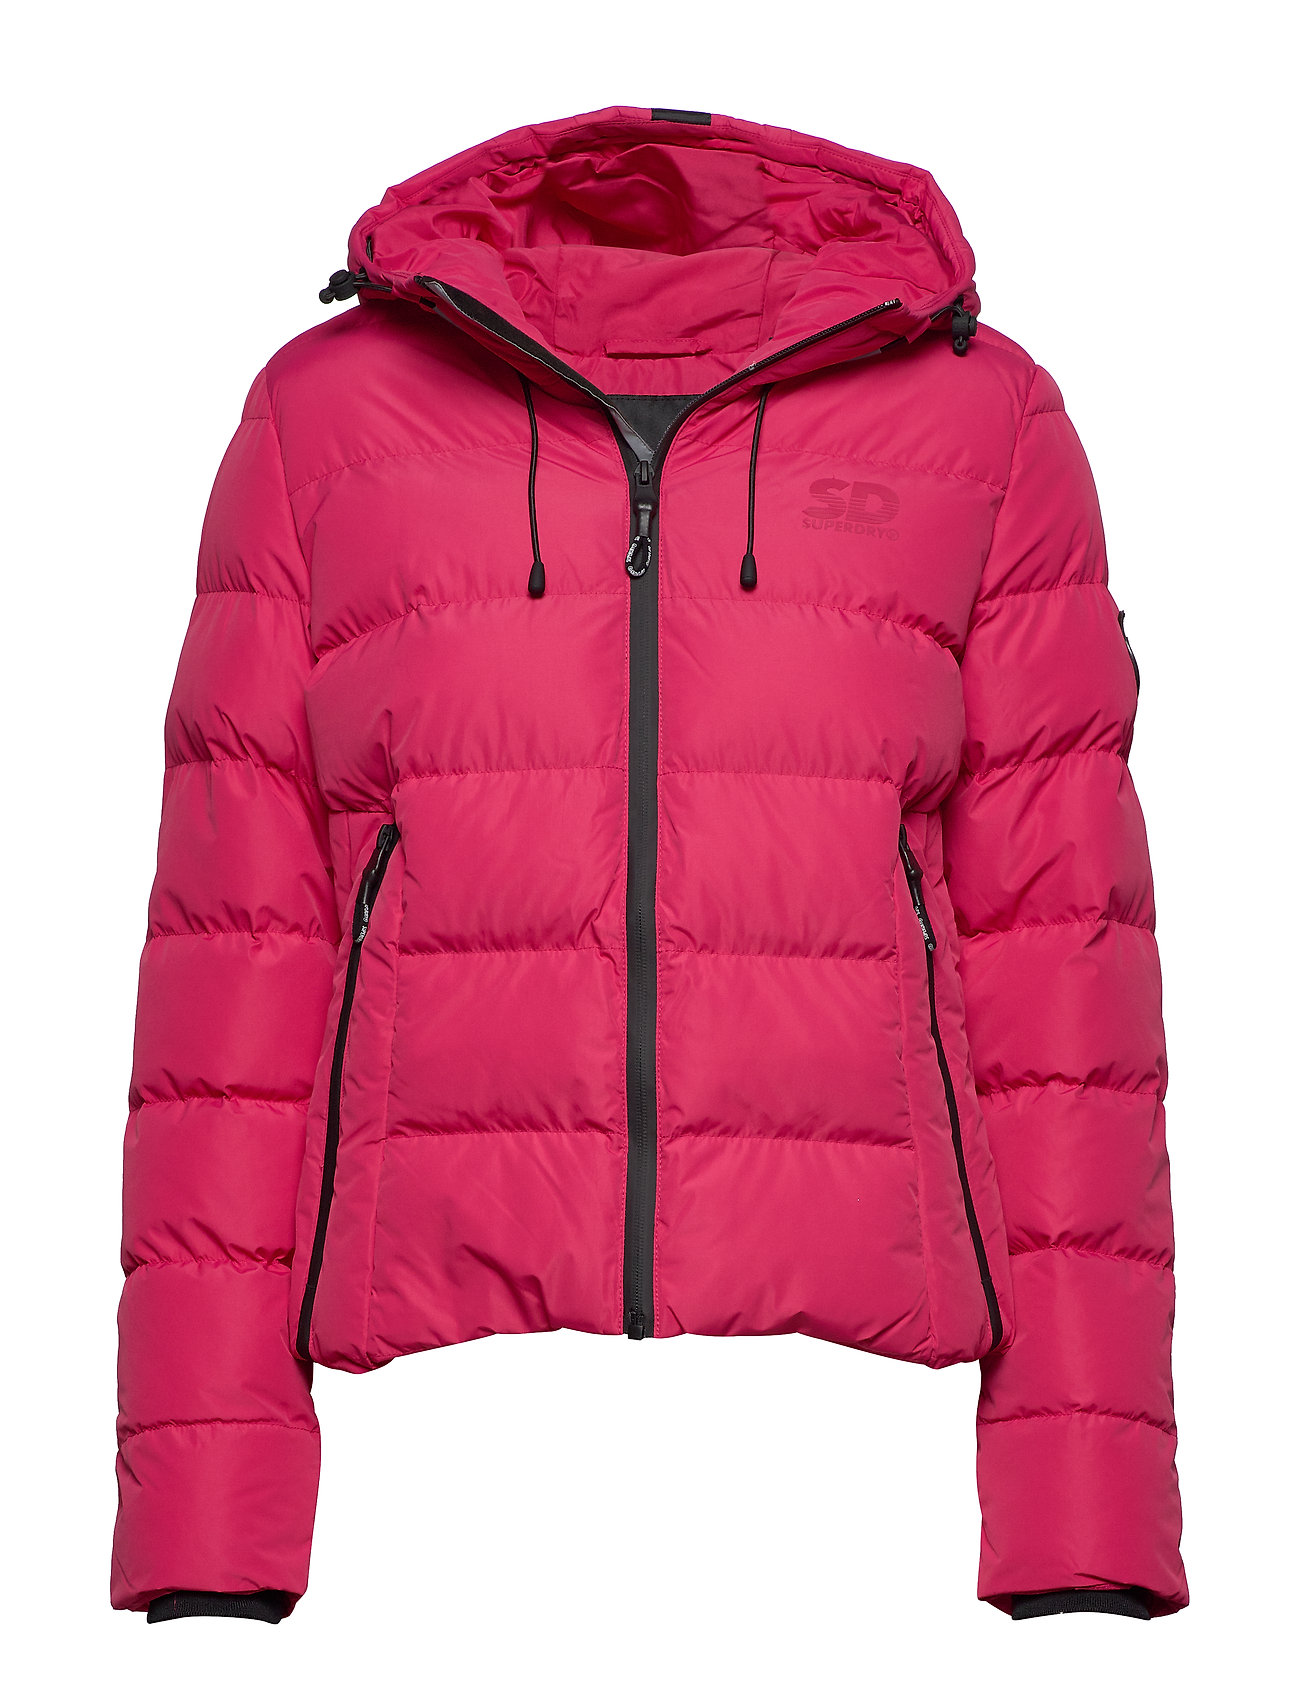 Superdry SPIRIT PUFFER ICON JACKET - ROSE RED